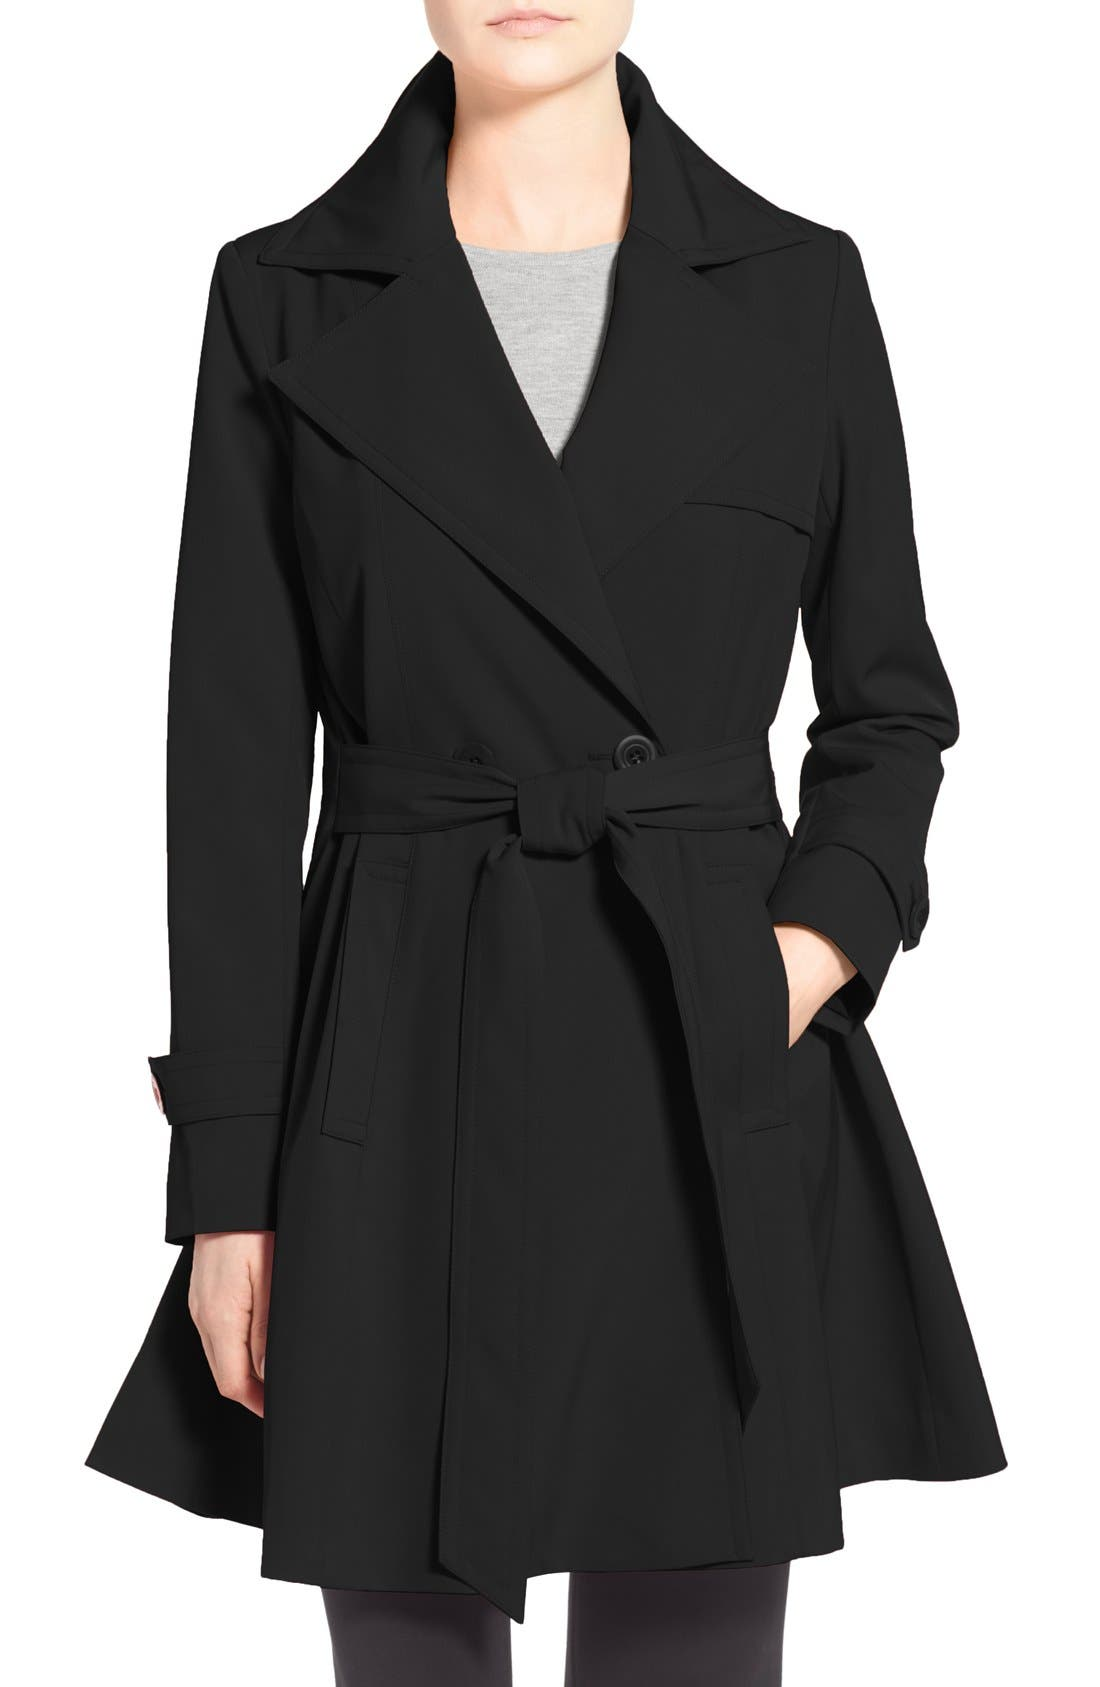 Alternate Image 1 Selected - Trina Turk 'Phoebe' Double Breasted Trench Coat (Online Only) (Regular & Petite)